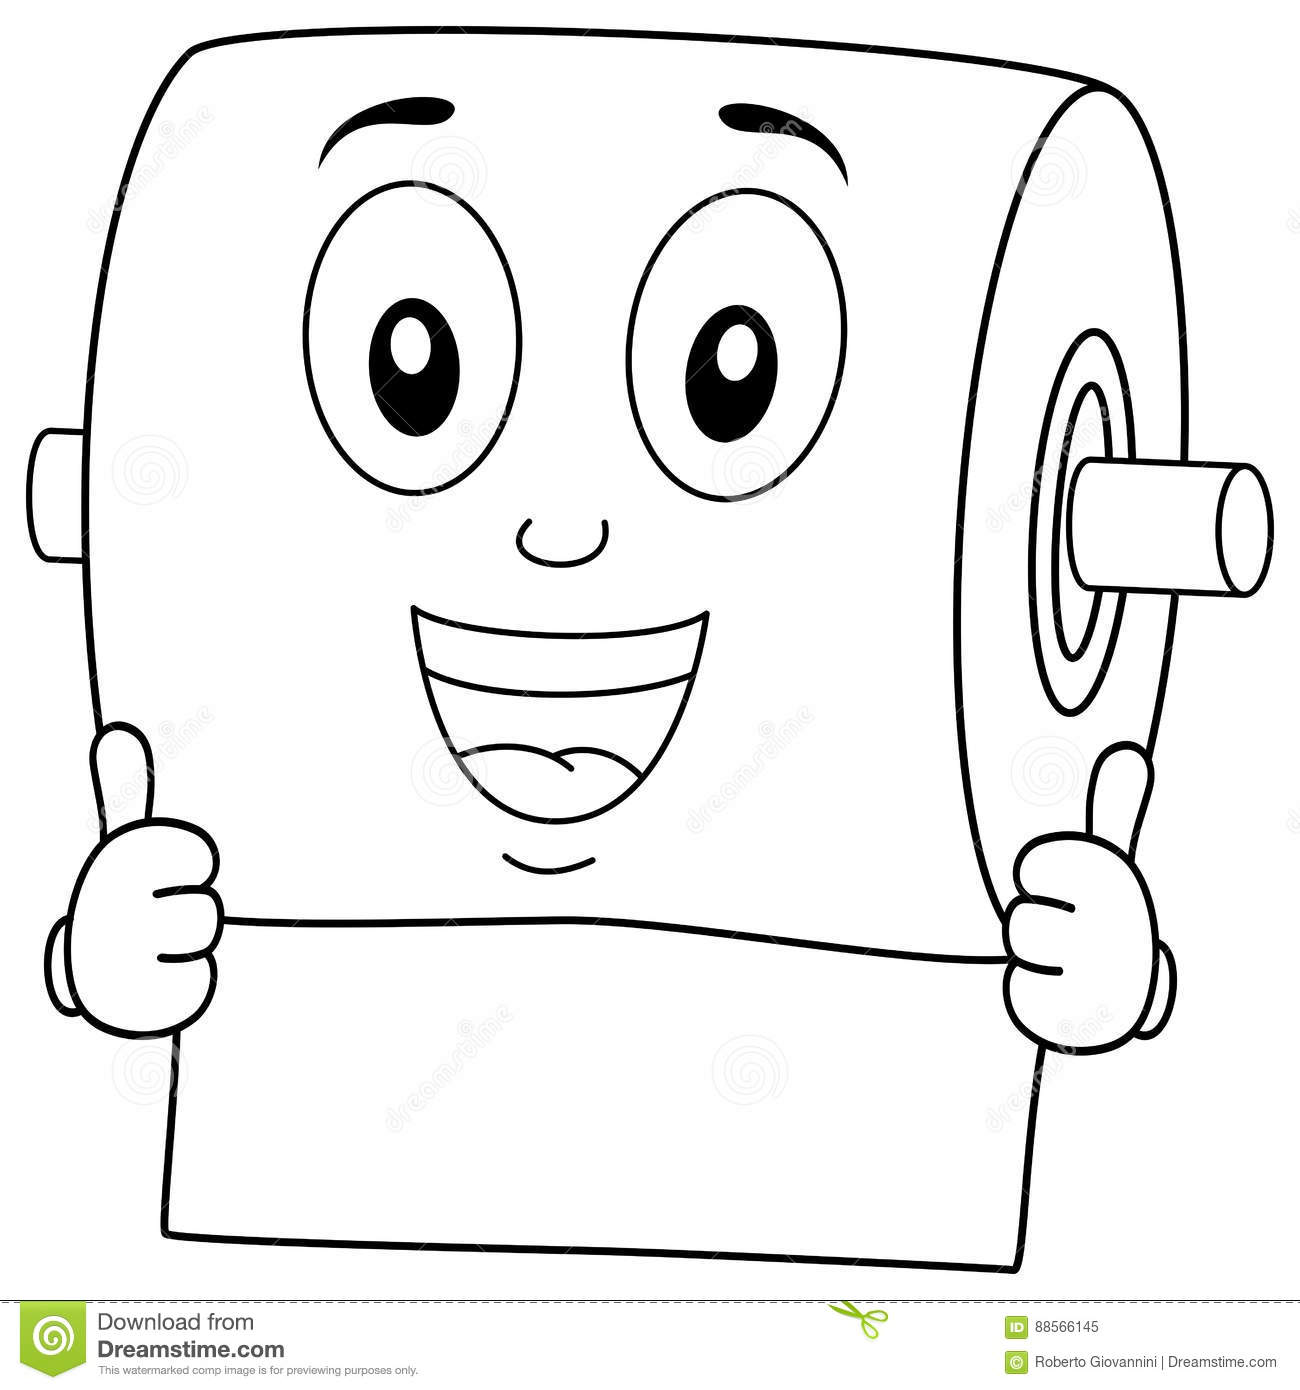 Funny Toilet Paper Smiling Character Vector Illustration